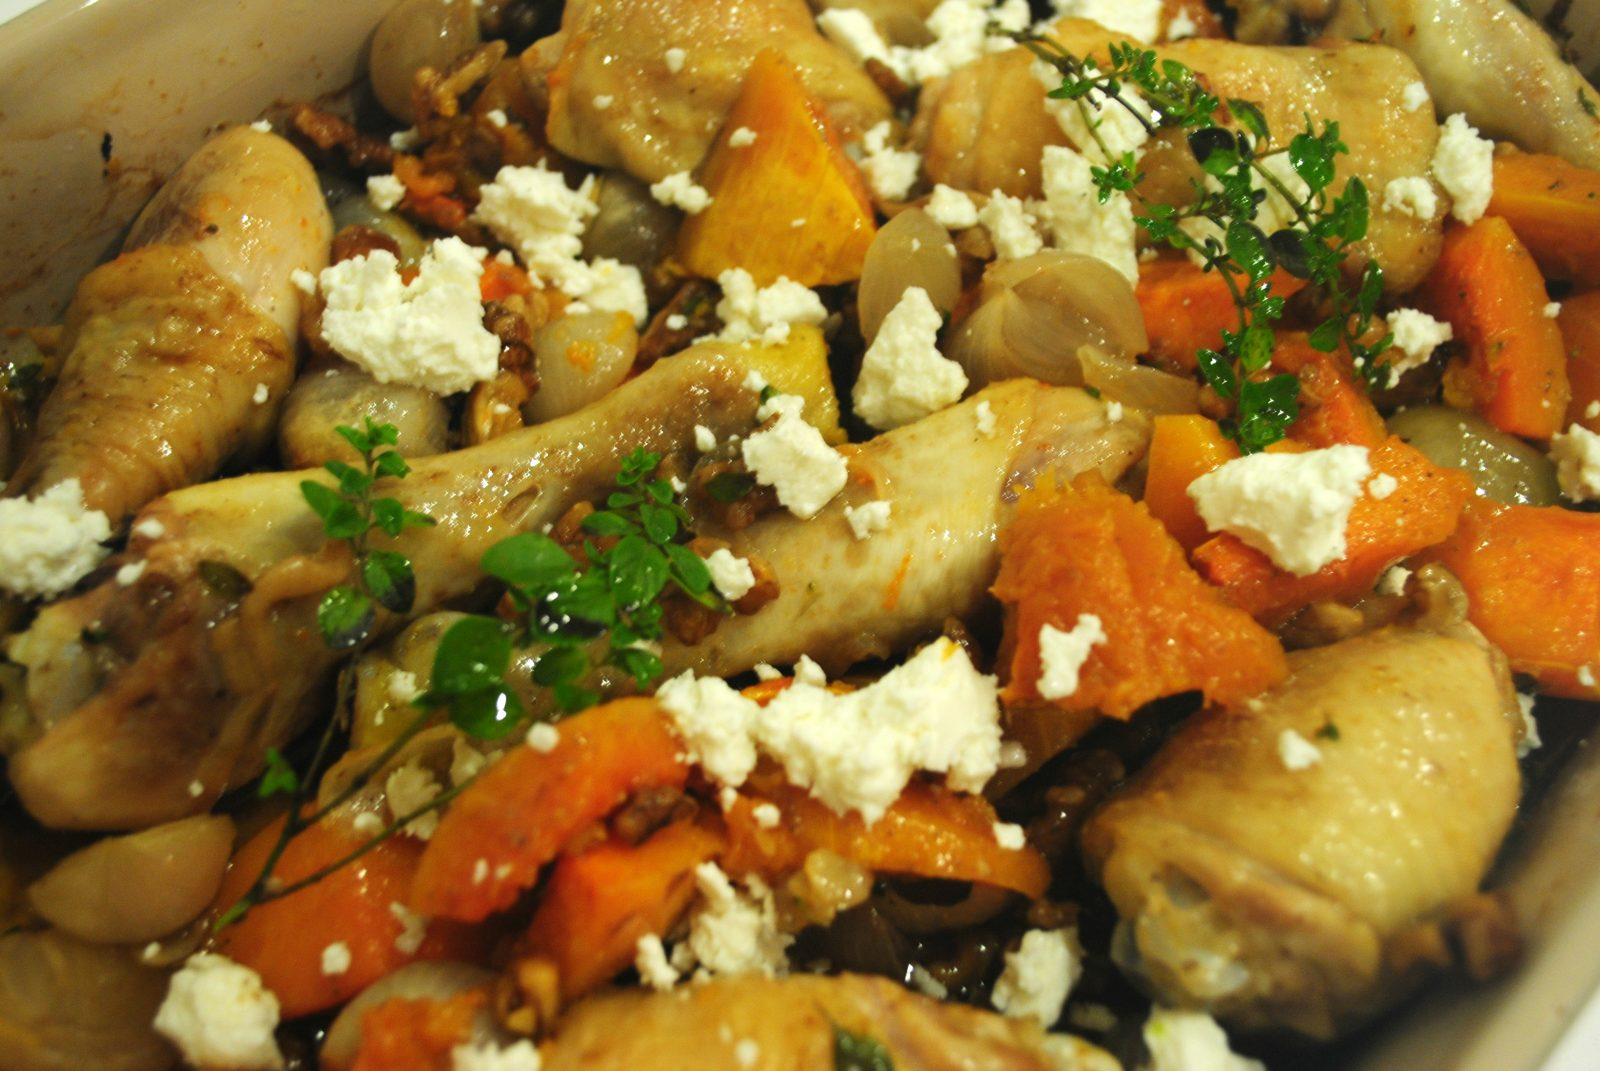 Baked Chicken & Butternut Squash with Goats Cheese & Walnuts